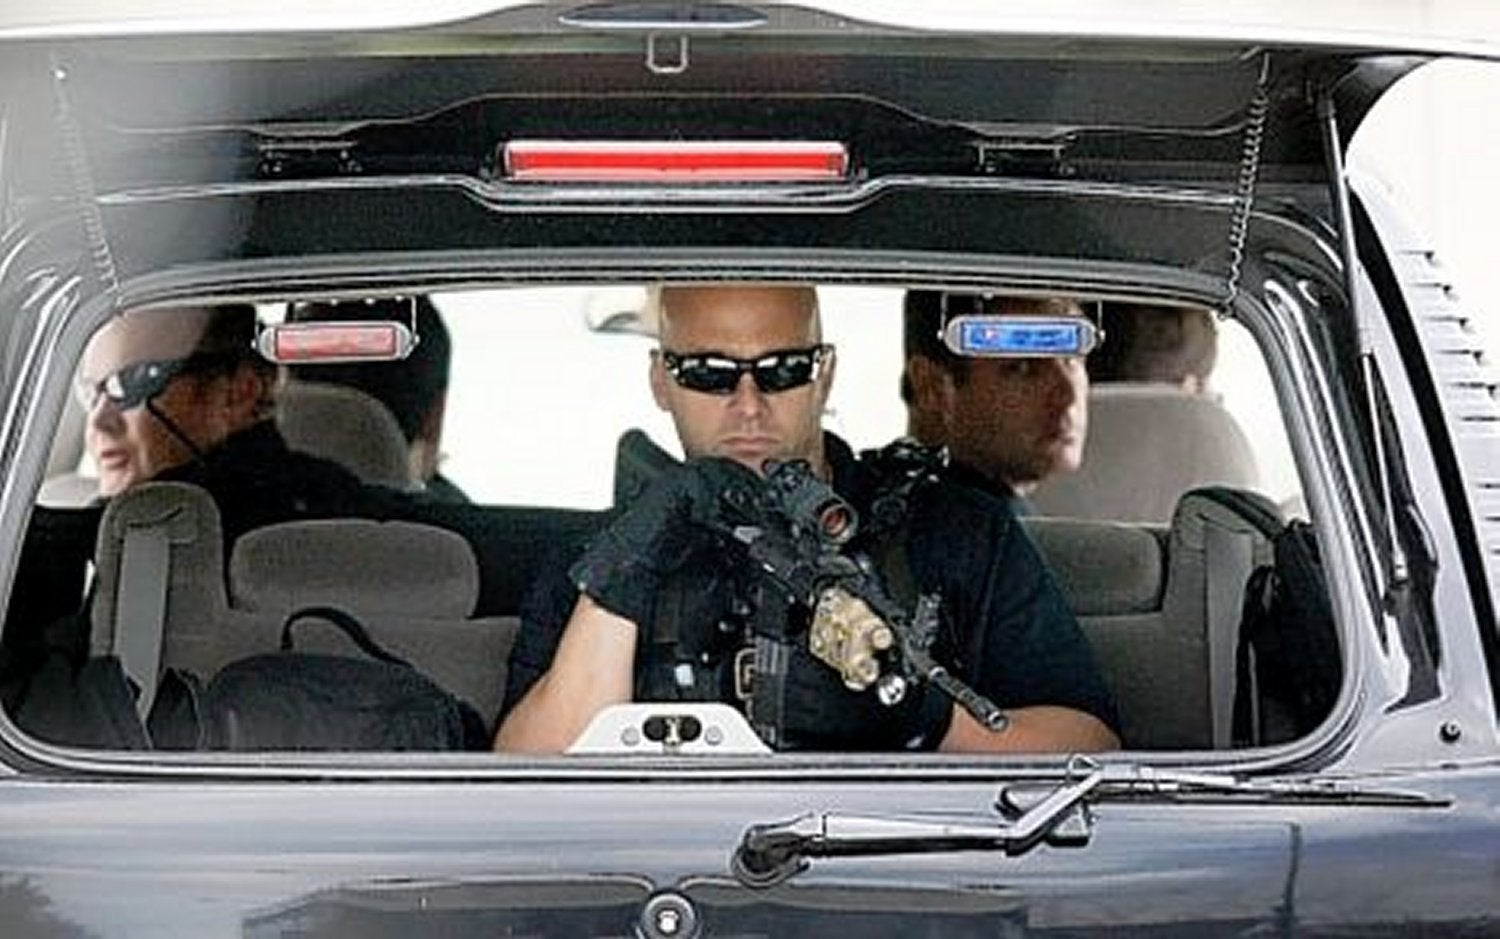 Secret Service Looking for New AR-Style Rifle in 5.56